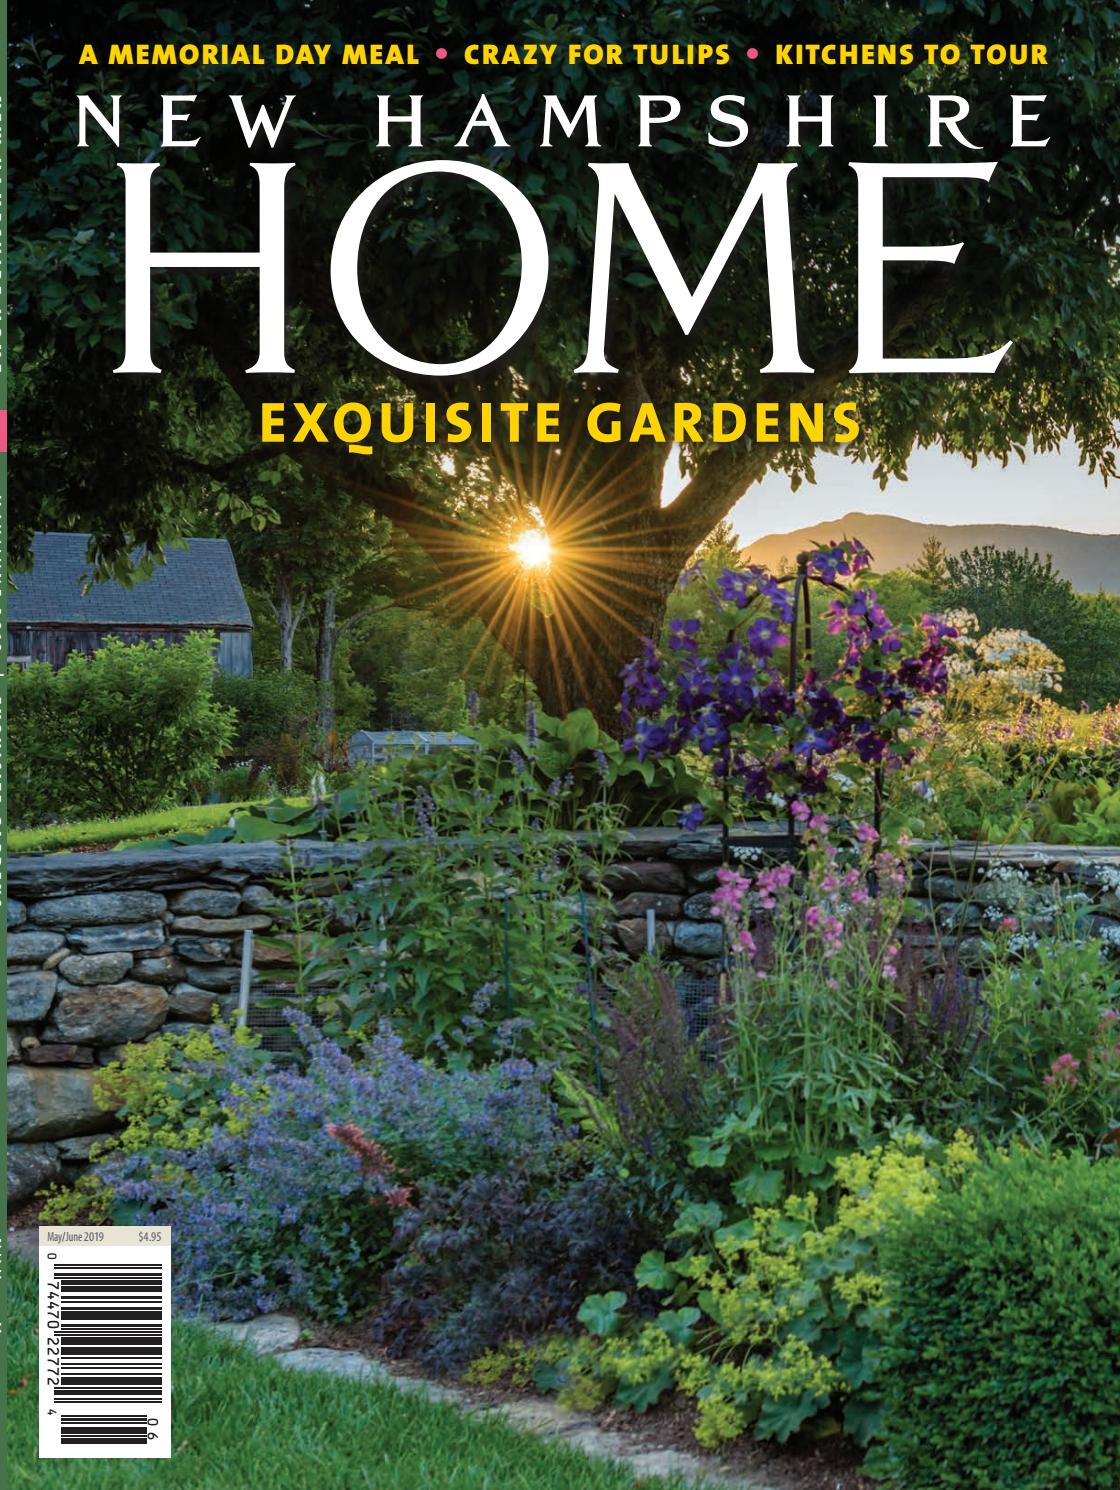 catalogs for home decor elegant home decor creative home.htm new hampshire home may june 2019 by mclean communications issuu  new hampshire home may june 2019 by